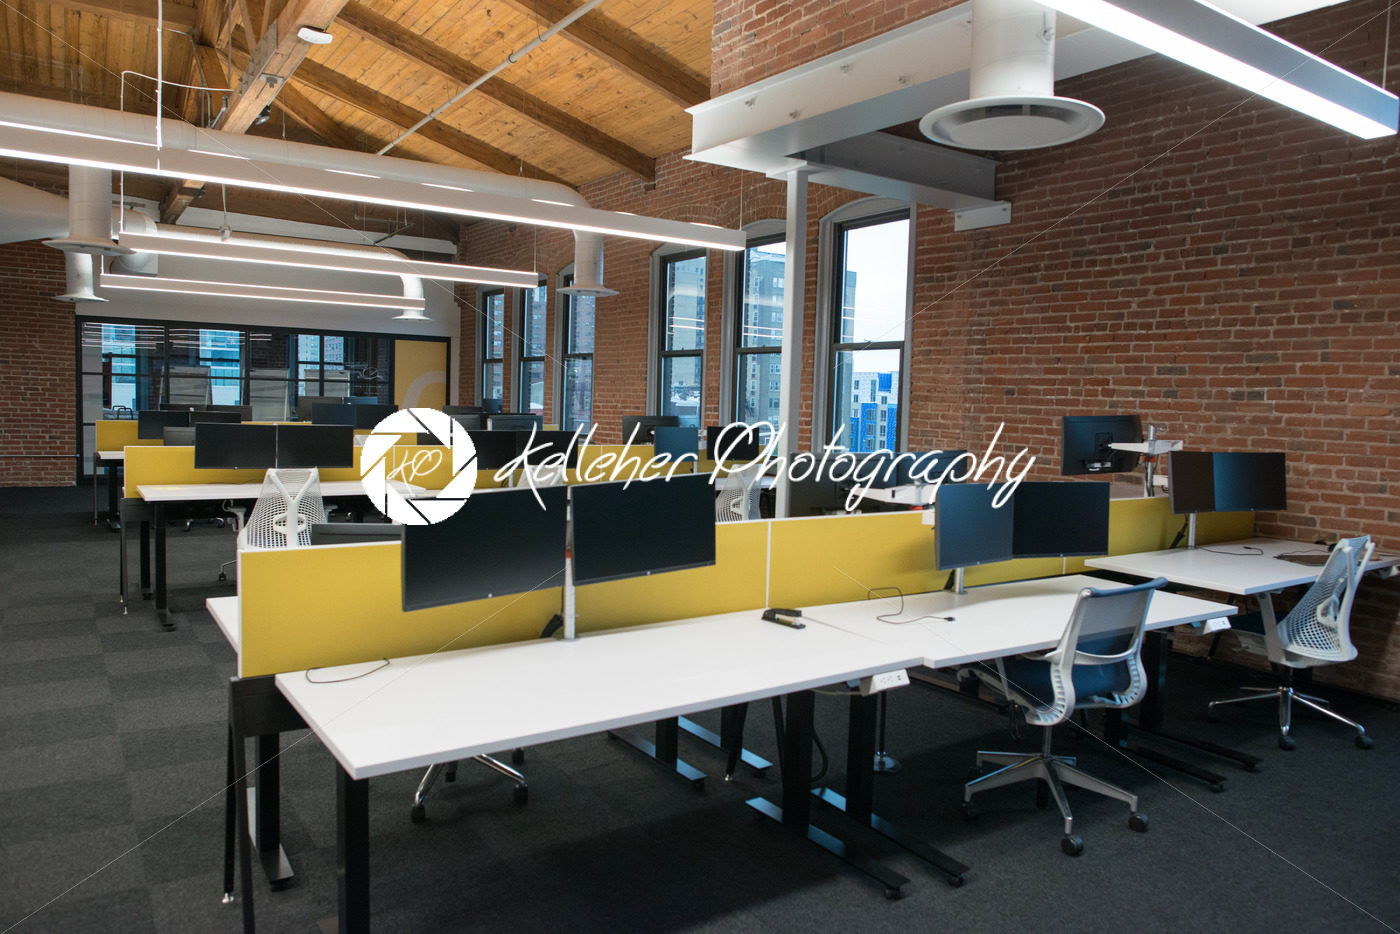 loft office. Trendy Modern Open Concept Loft Office Space With Big Windows, Natural Light And A Layout To Encourage Collaboration, Creativity Innovation E